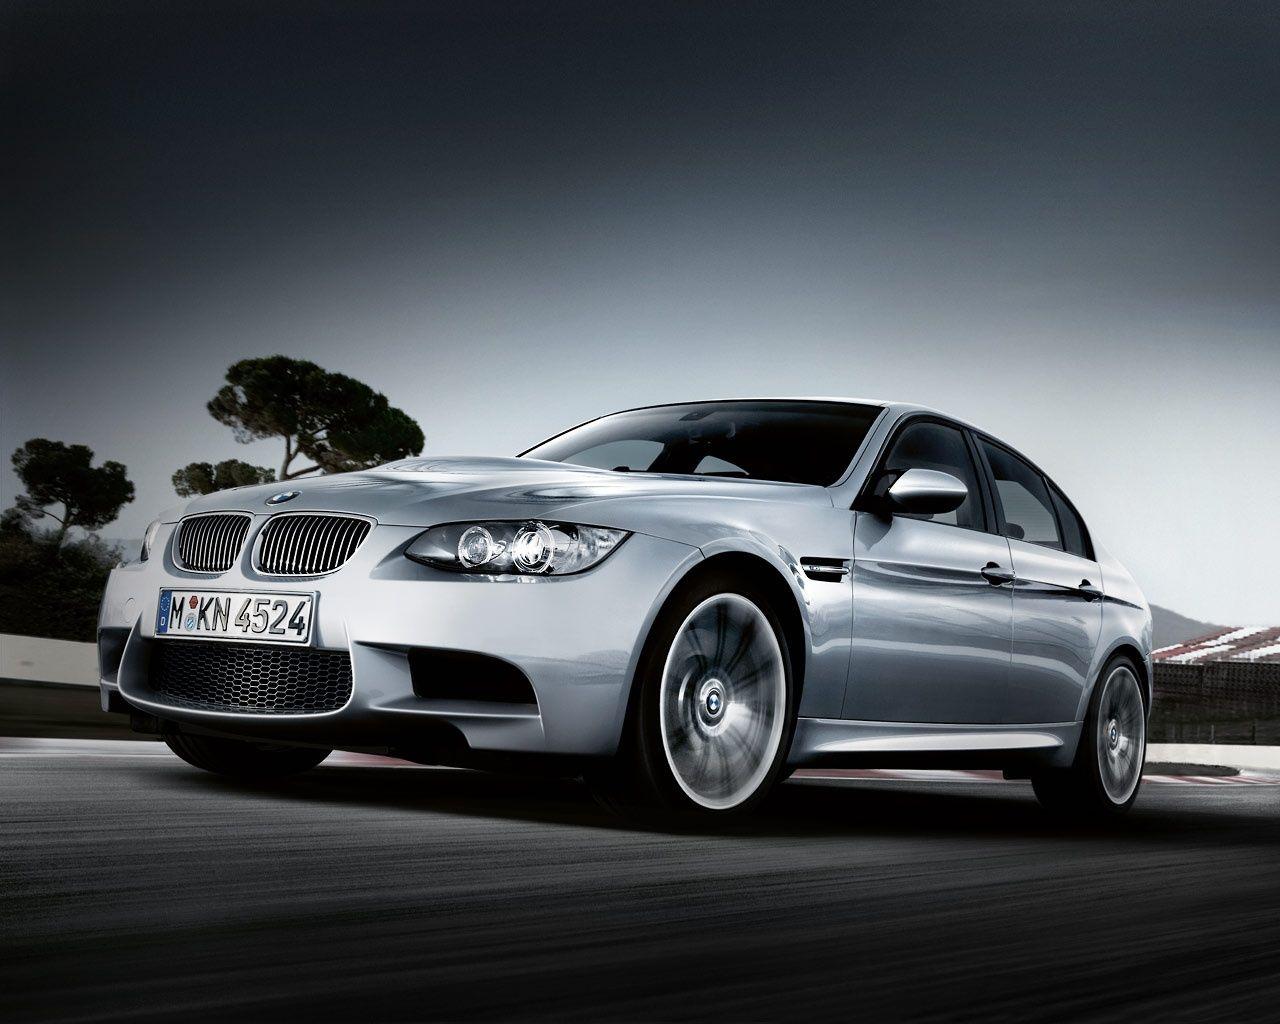 Bmw E90 Wallpaper Cars Bmw Cars Dream Cars